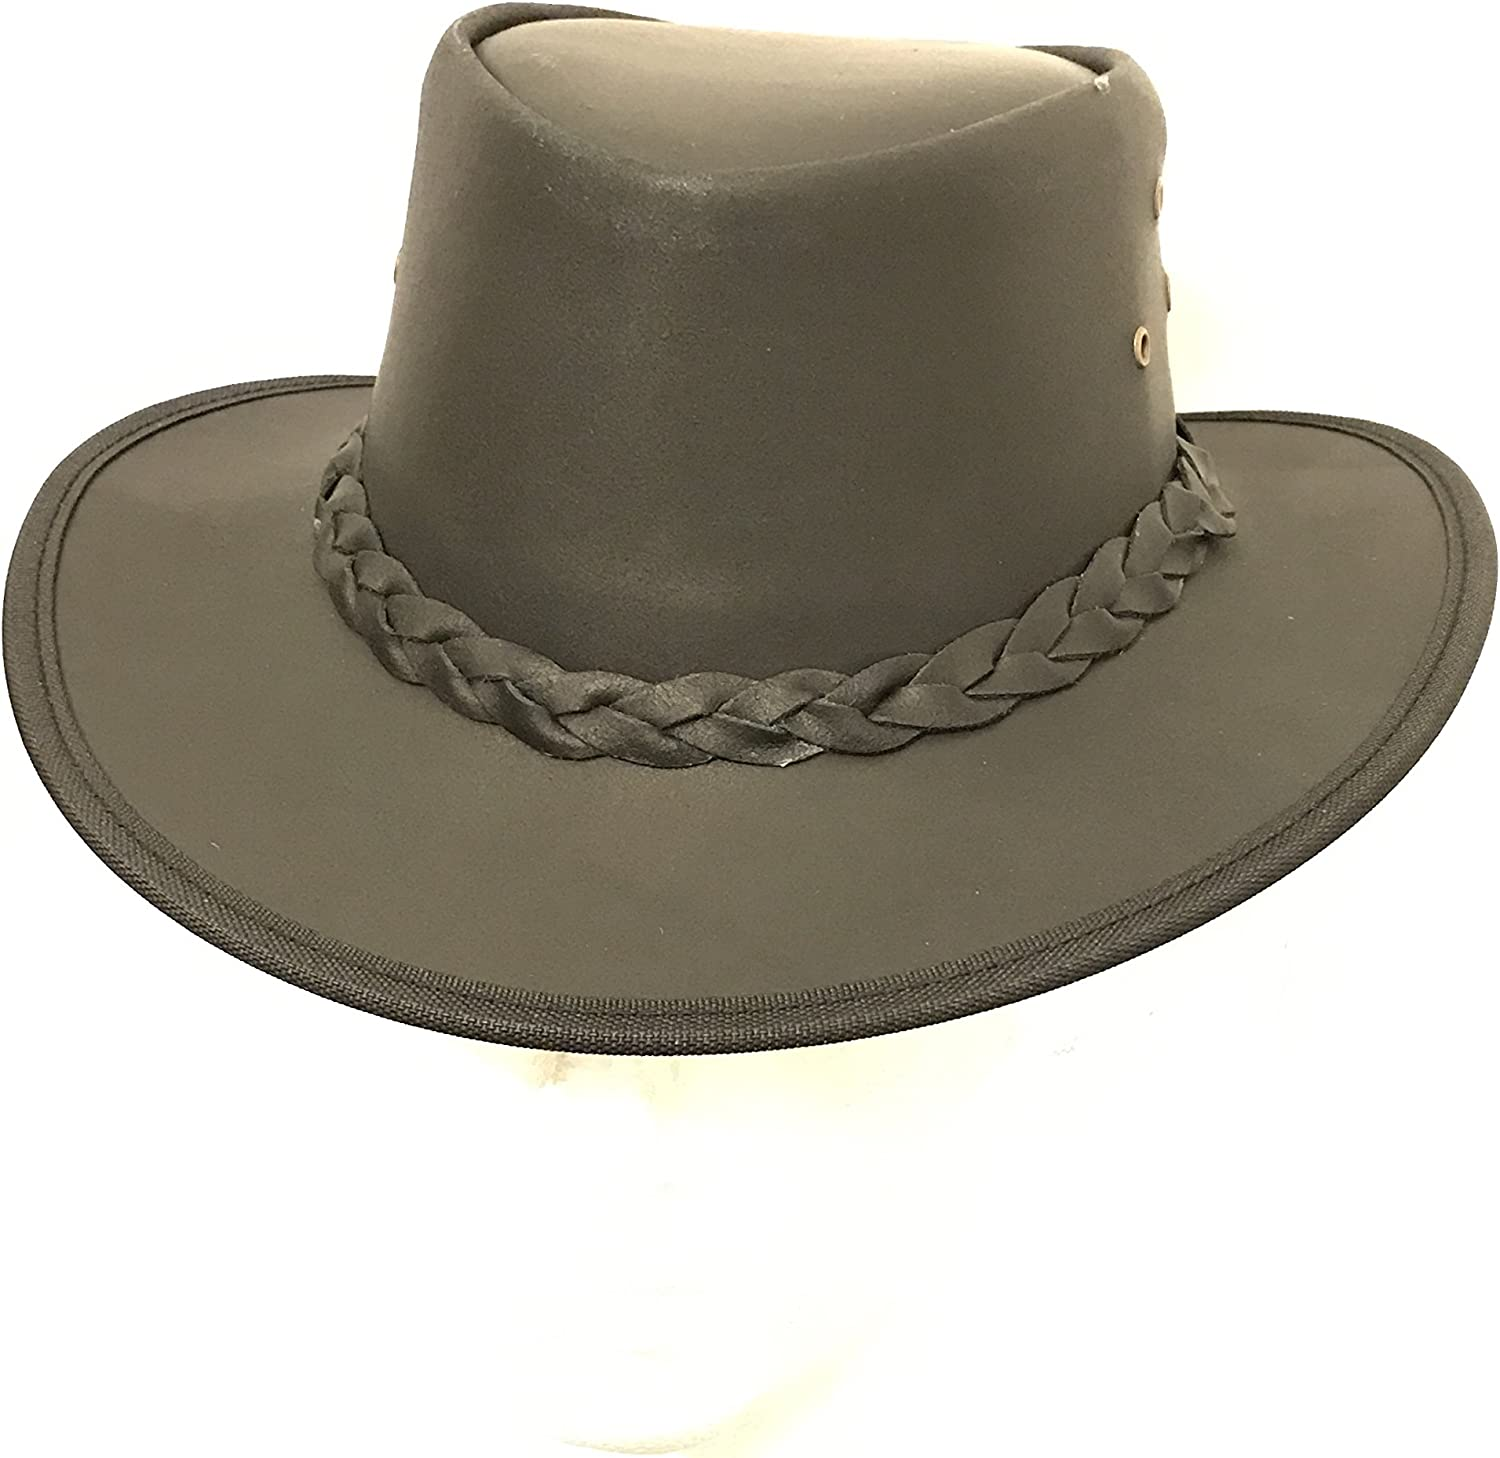 Kids Childrens Brown Leather Bush Hat Cowboy Hat One Size 55cm Boy//Girl